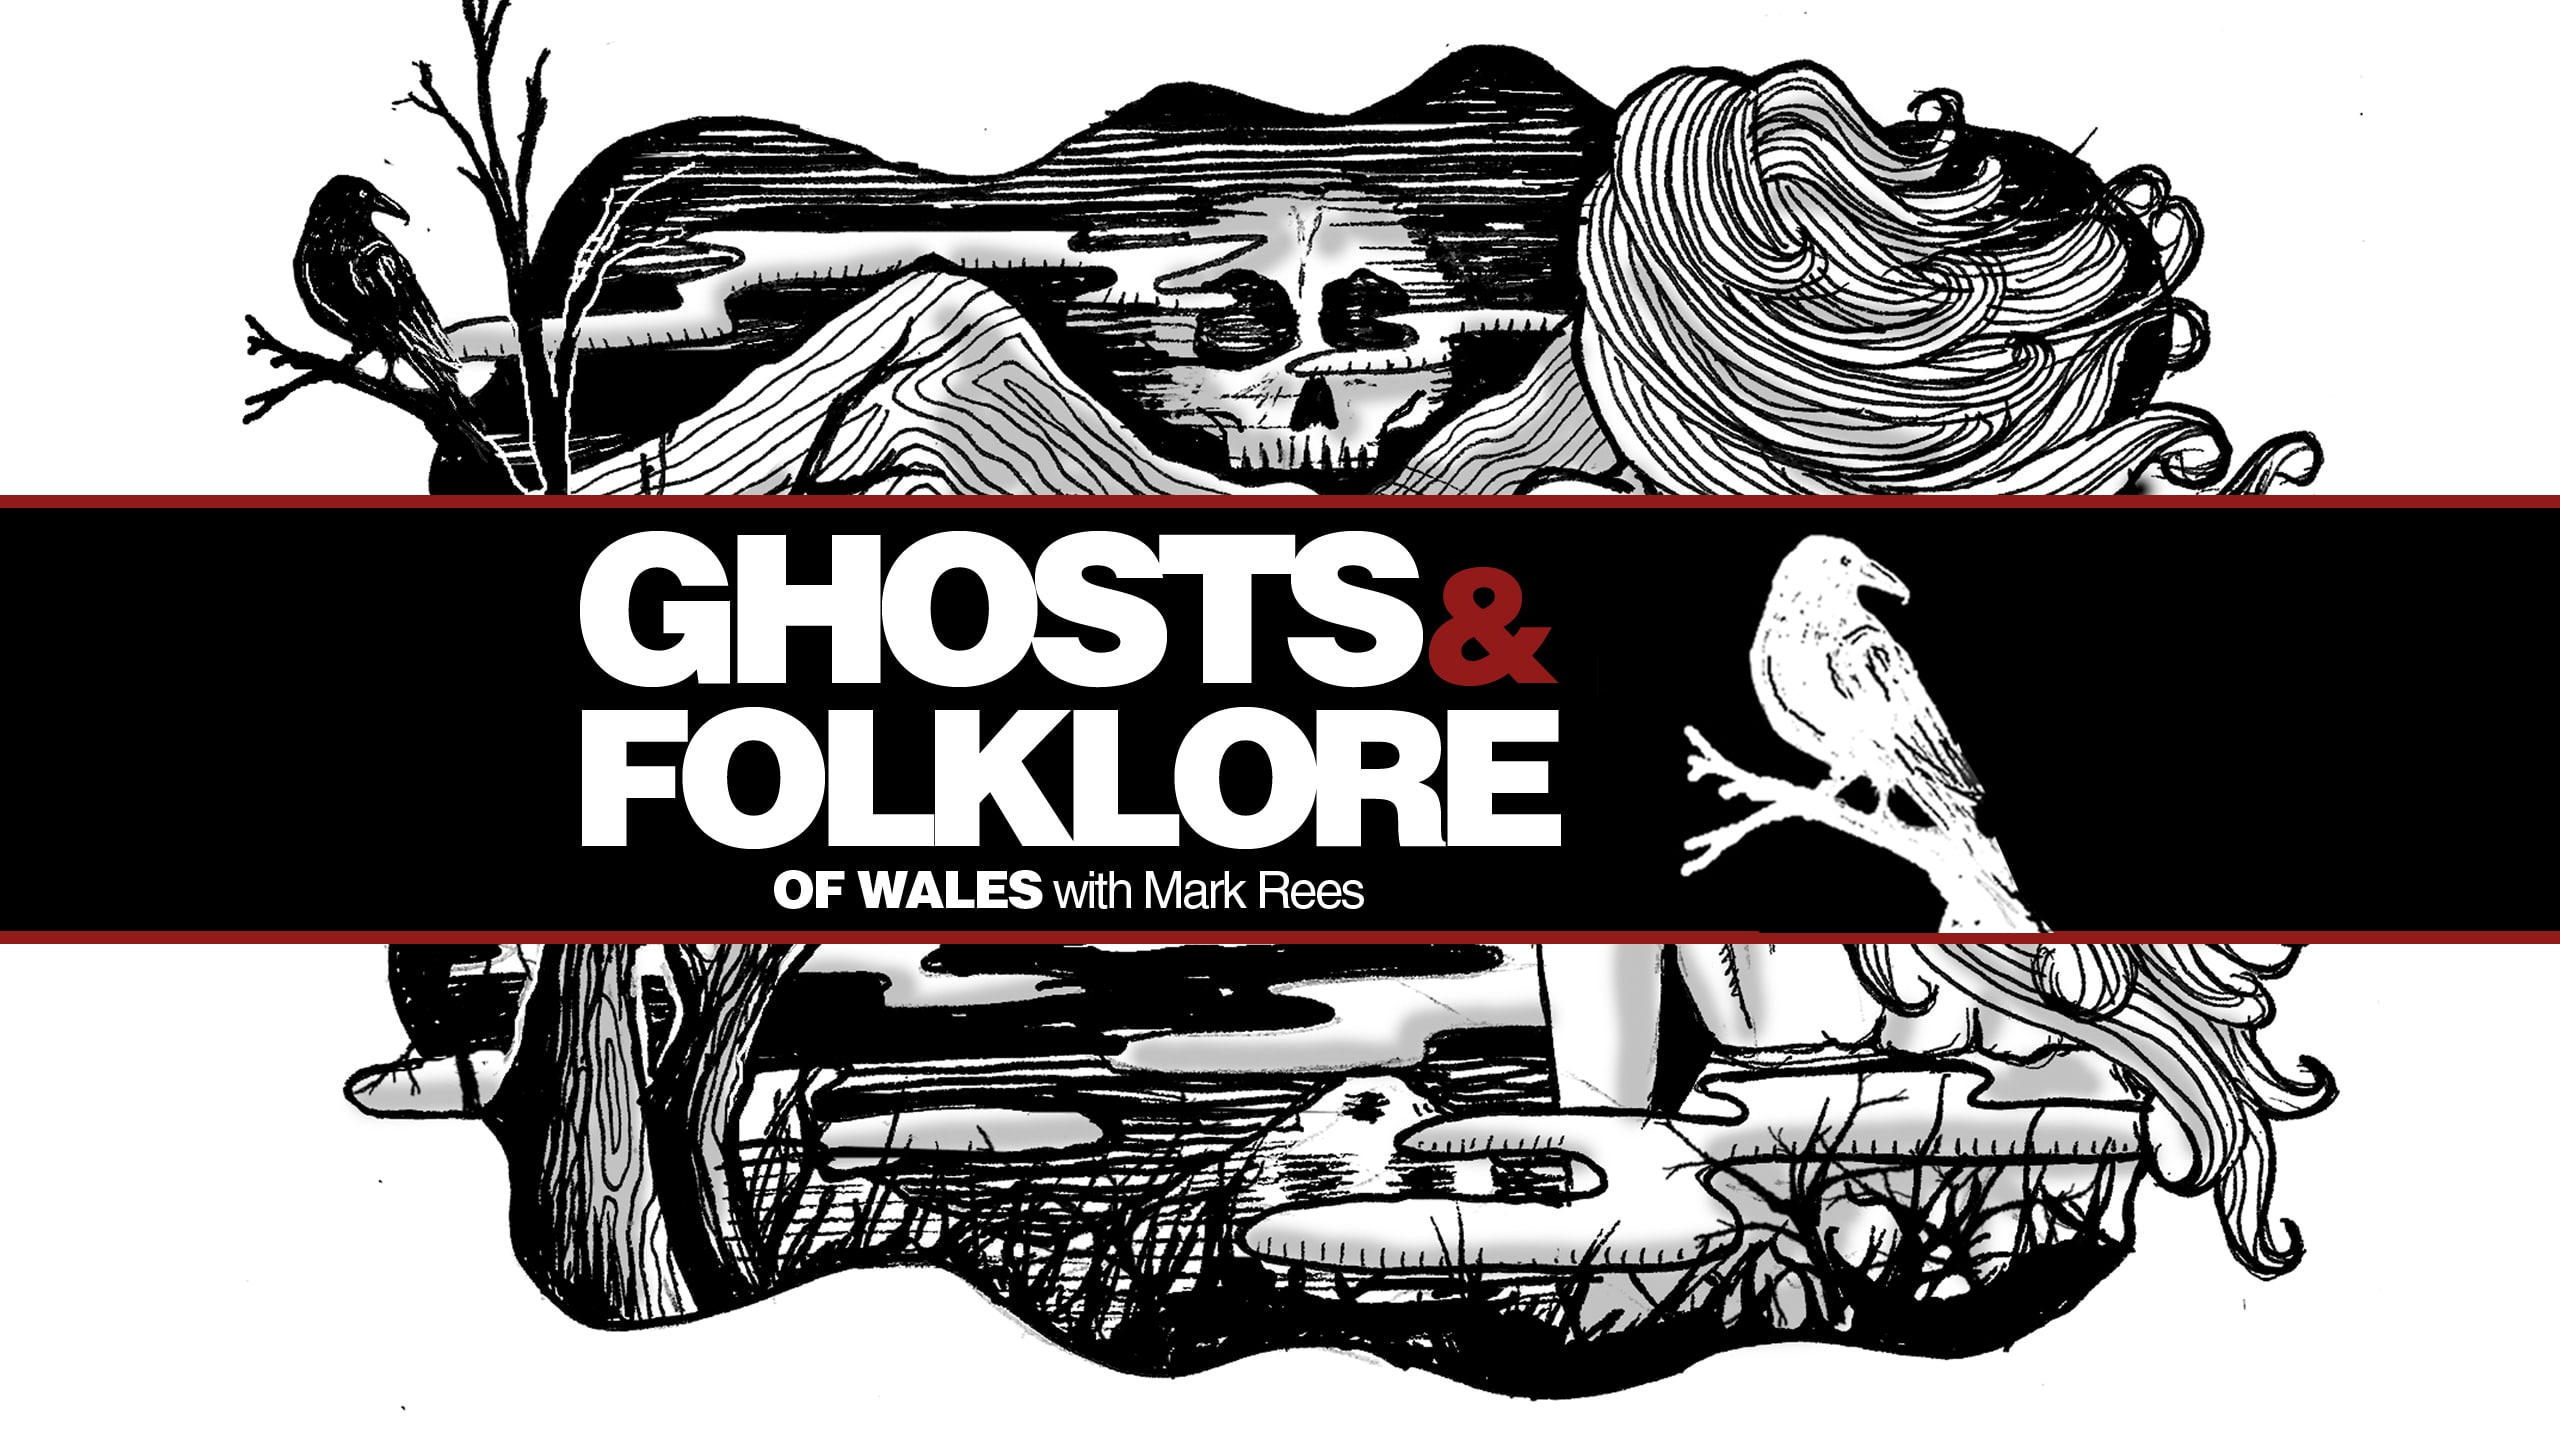 GHOSTS AND FOLKLORE OF WALES with Mark Rees